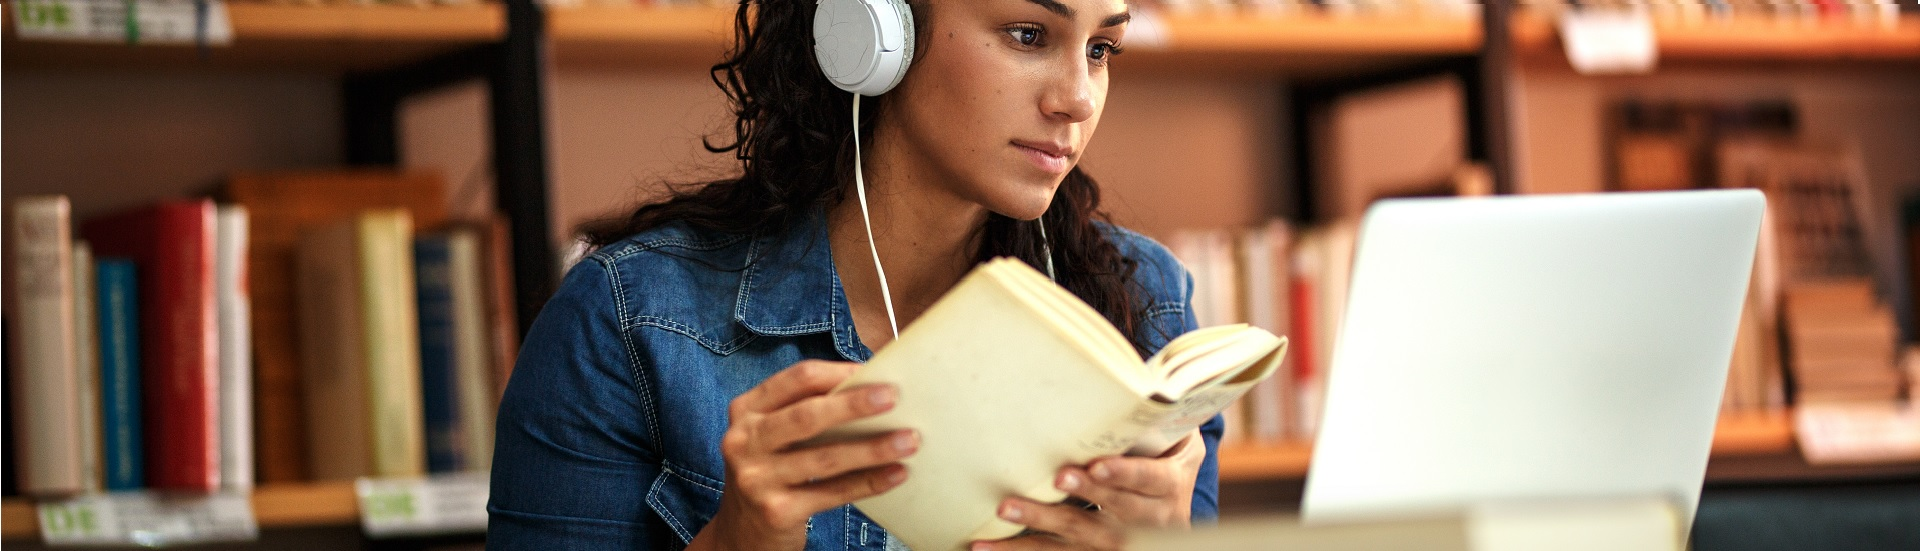 Woman with headphones with book and laptop